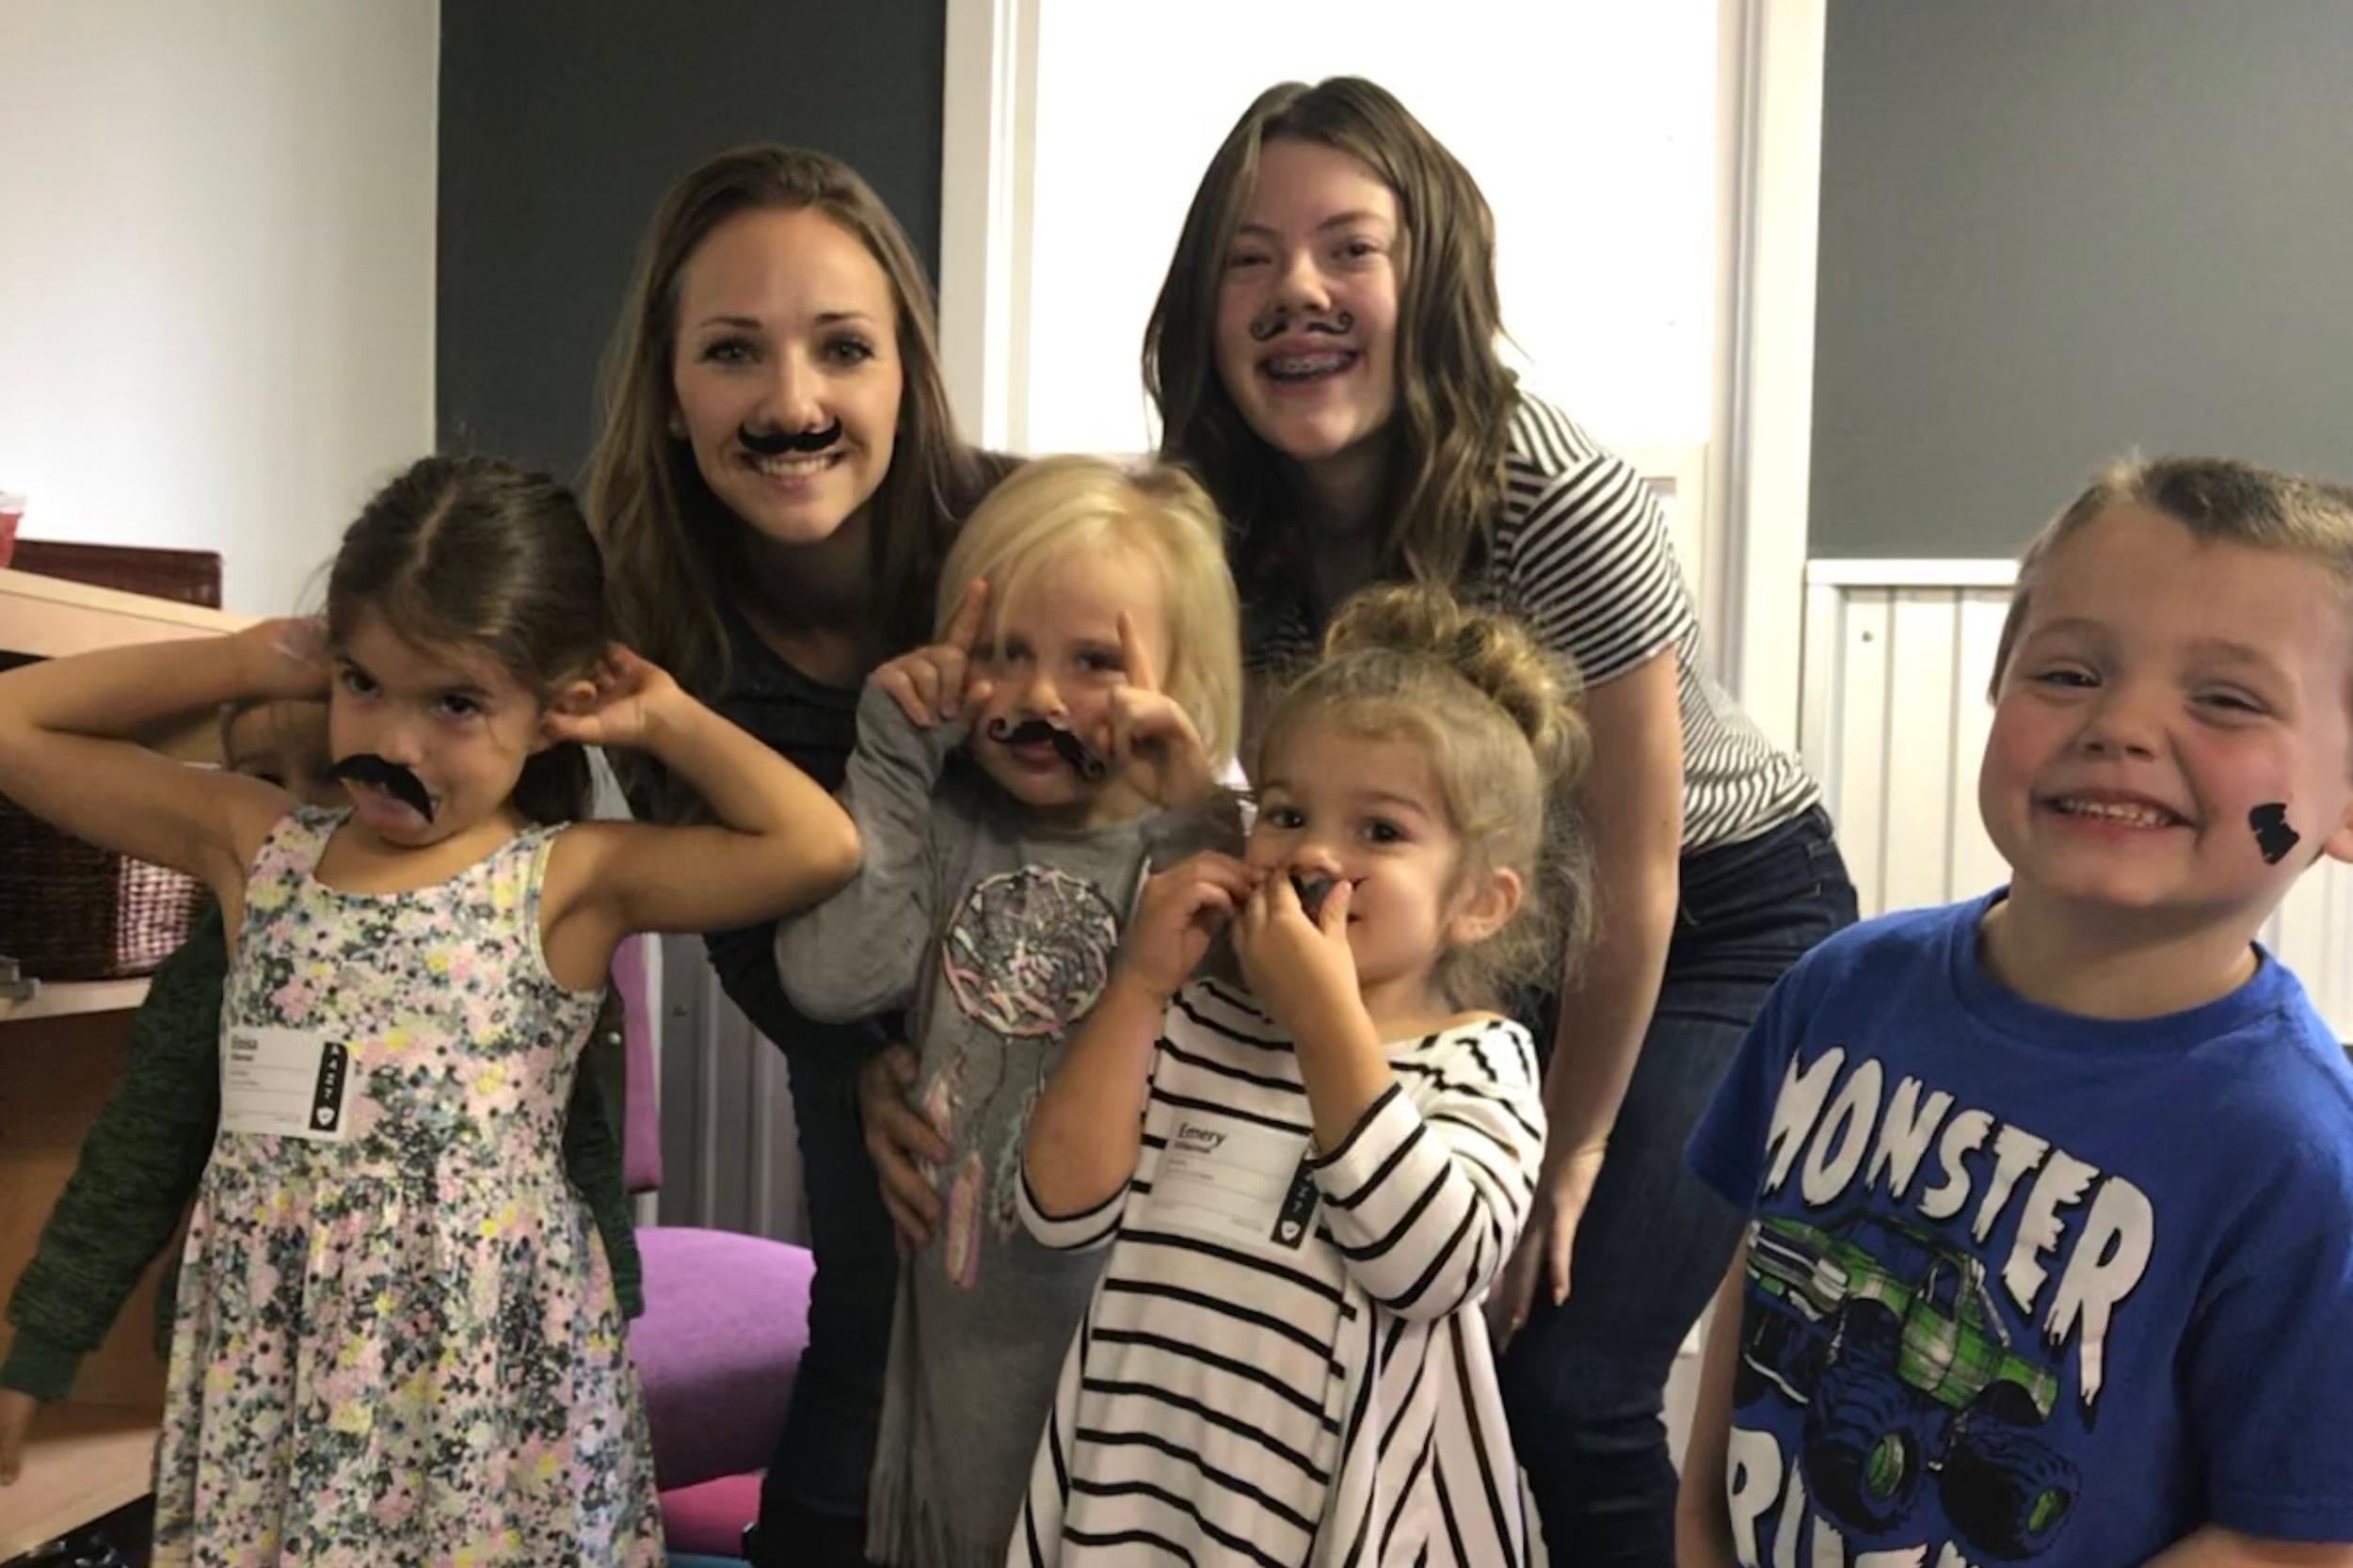 Children's classes - We provide a loving children's ministry for infants through elementary. Your kids will have a ton of fun while learning that Jesus cares about them, just as they are!